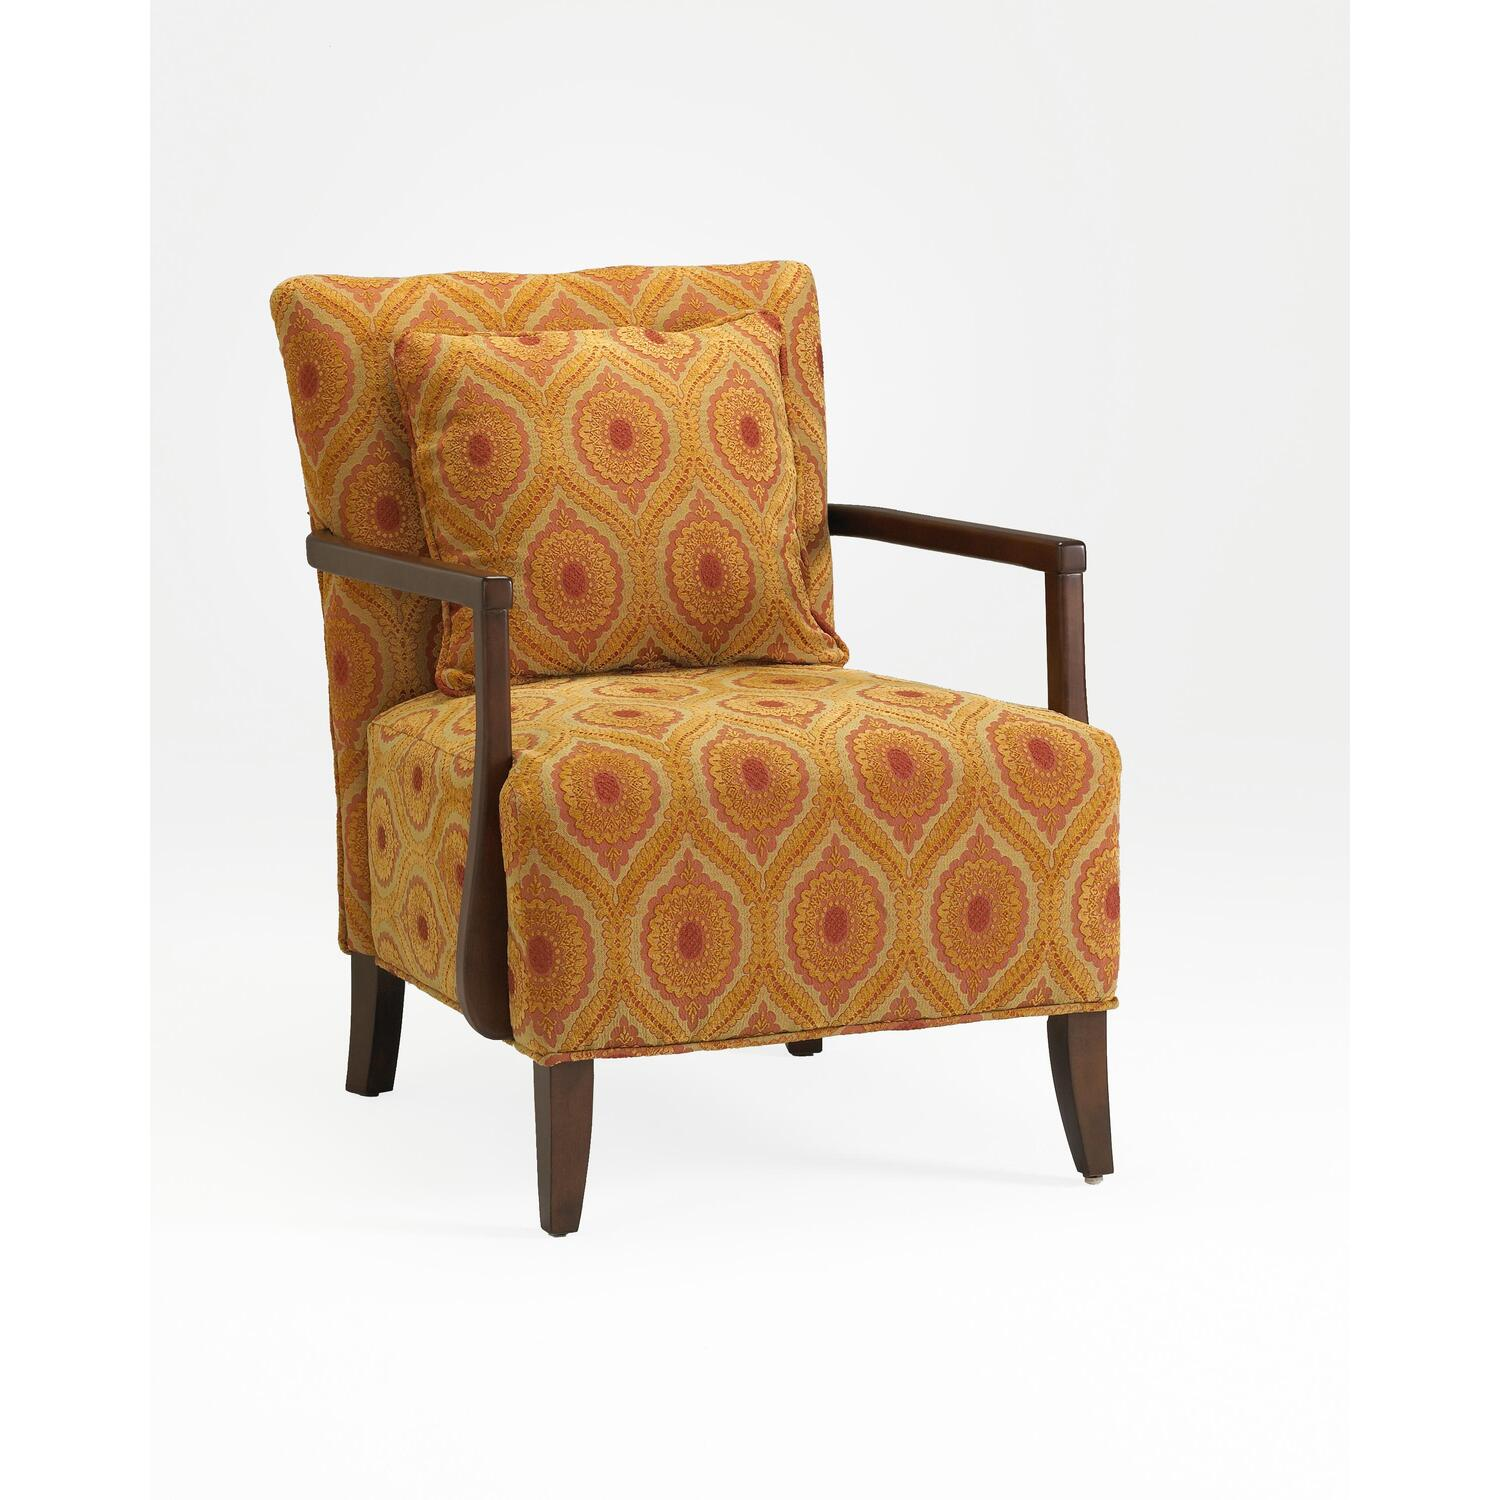 fort Pointe Dante Vintage Accent Chair by OJ merce